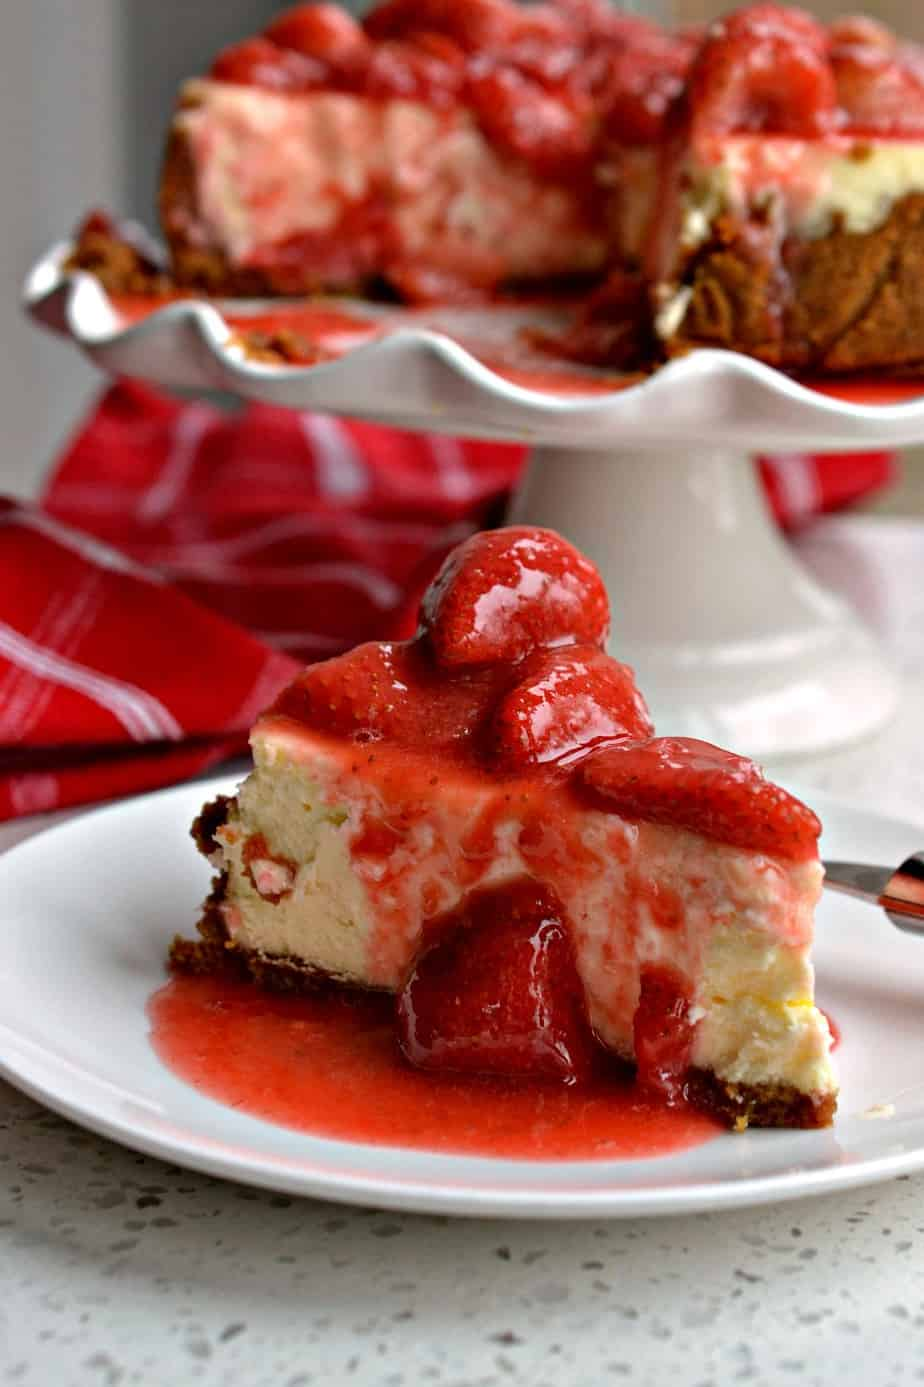 Delectable Strawberry Cheesecake is a cinch to make with a three ingredient graham cracker crust and fresh strawberry sauce.